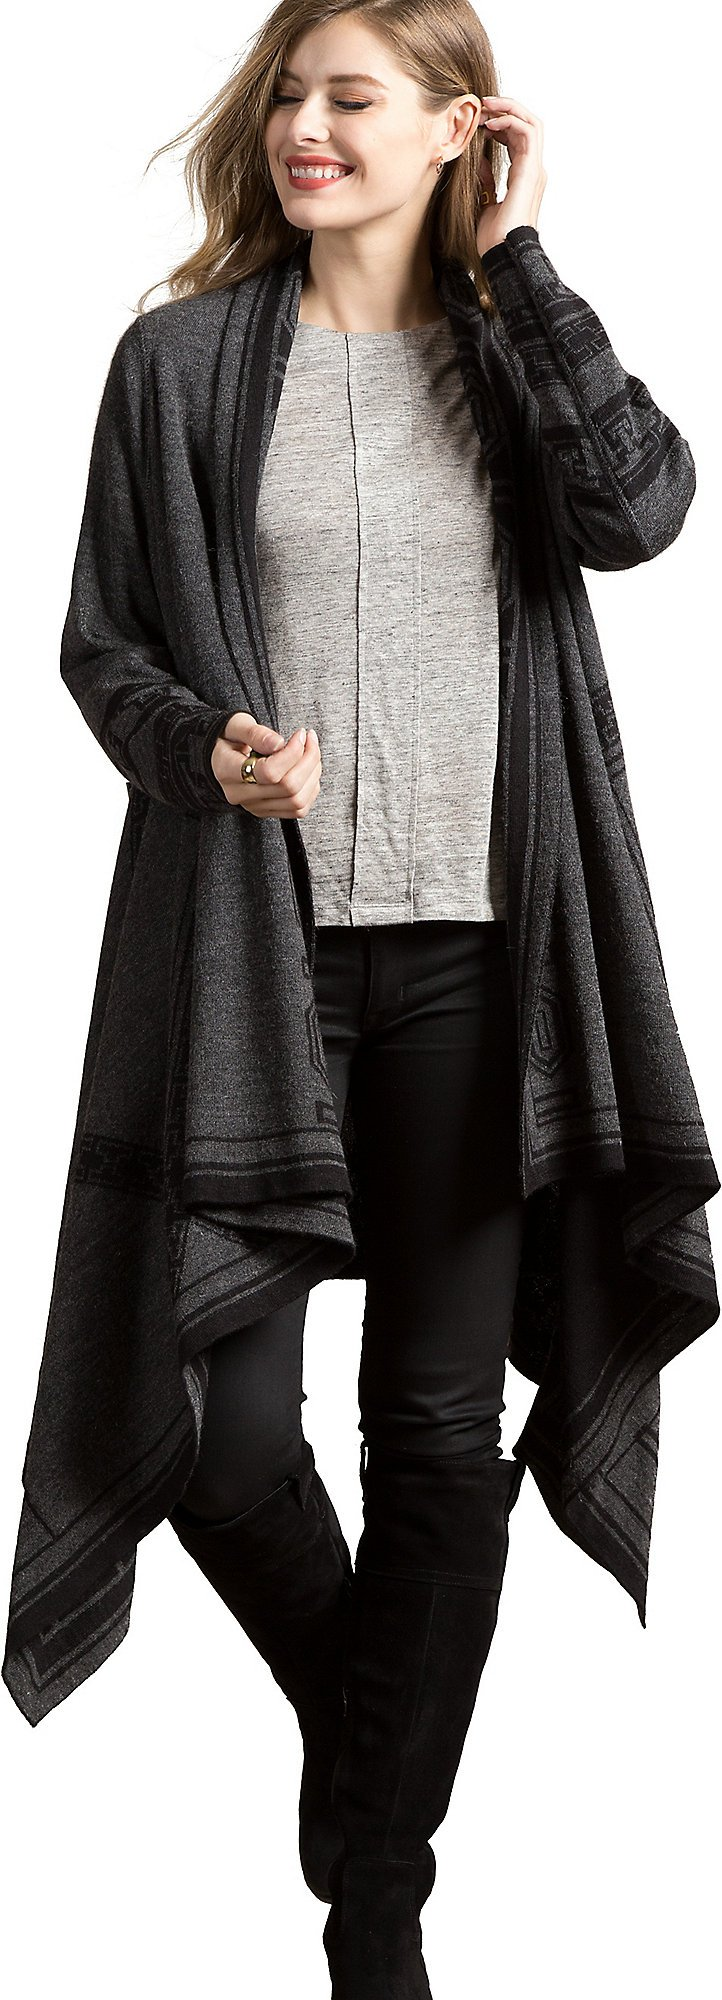 Overland Sheepskin Co. Serenity Reversible Peruvian Alpaca Wool Open Sweater Cape, Black/Gray, Size Large/XLarge (12-18) by Overland Sheepskin Co